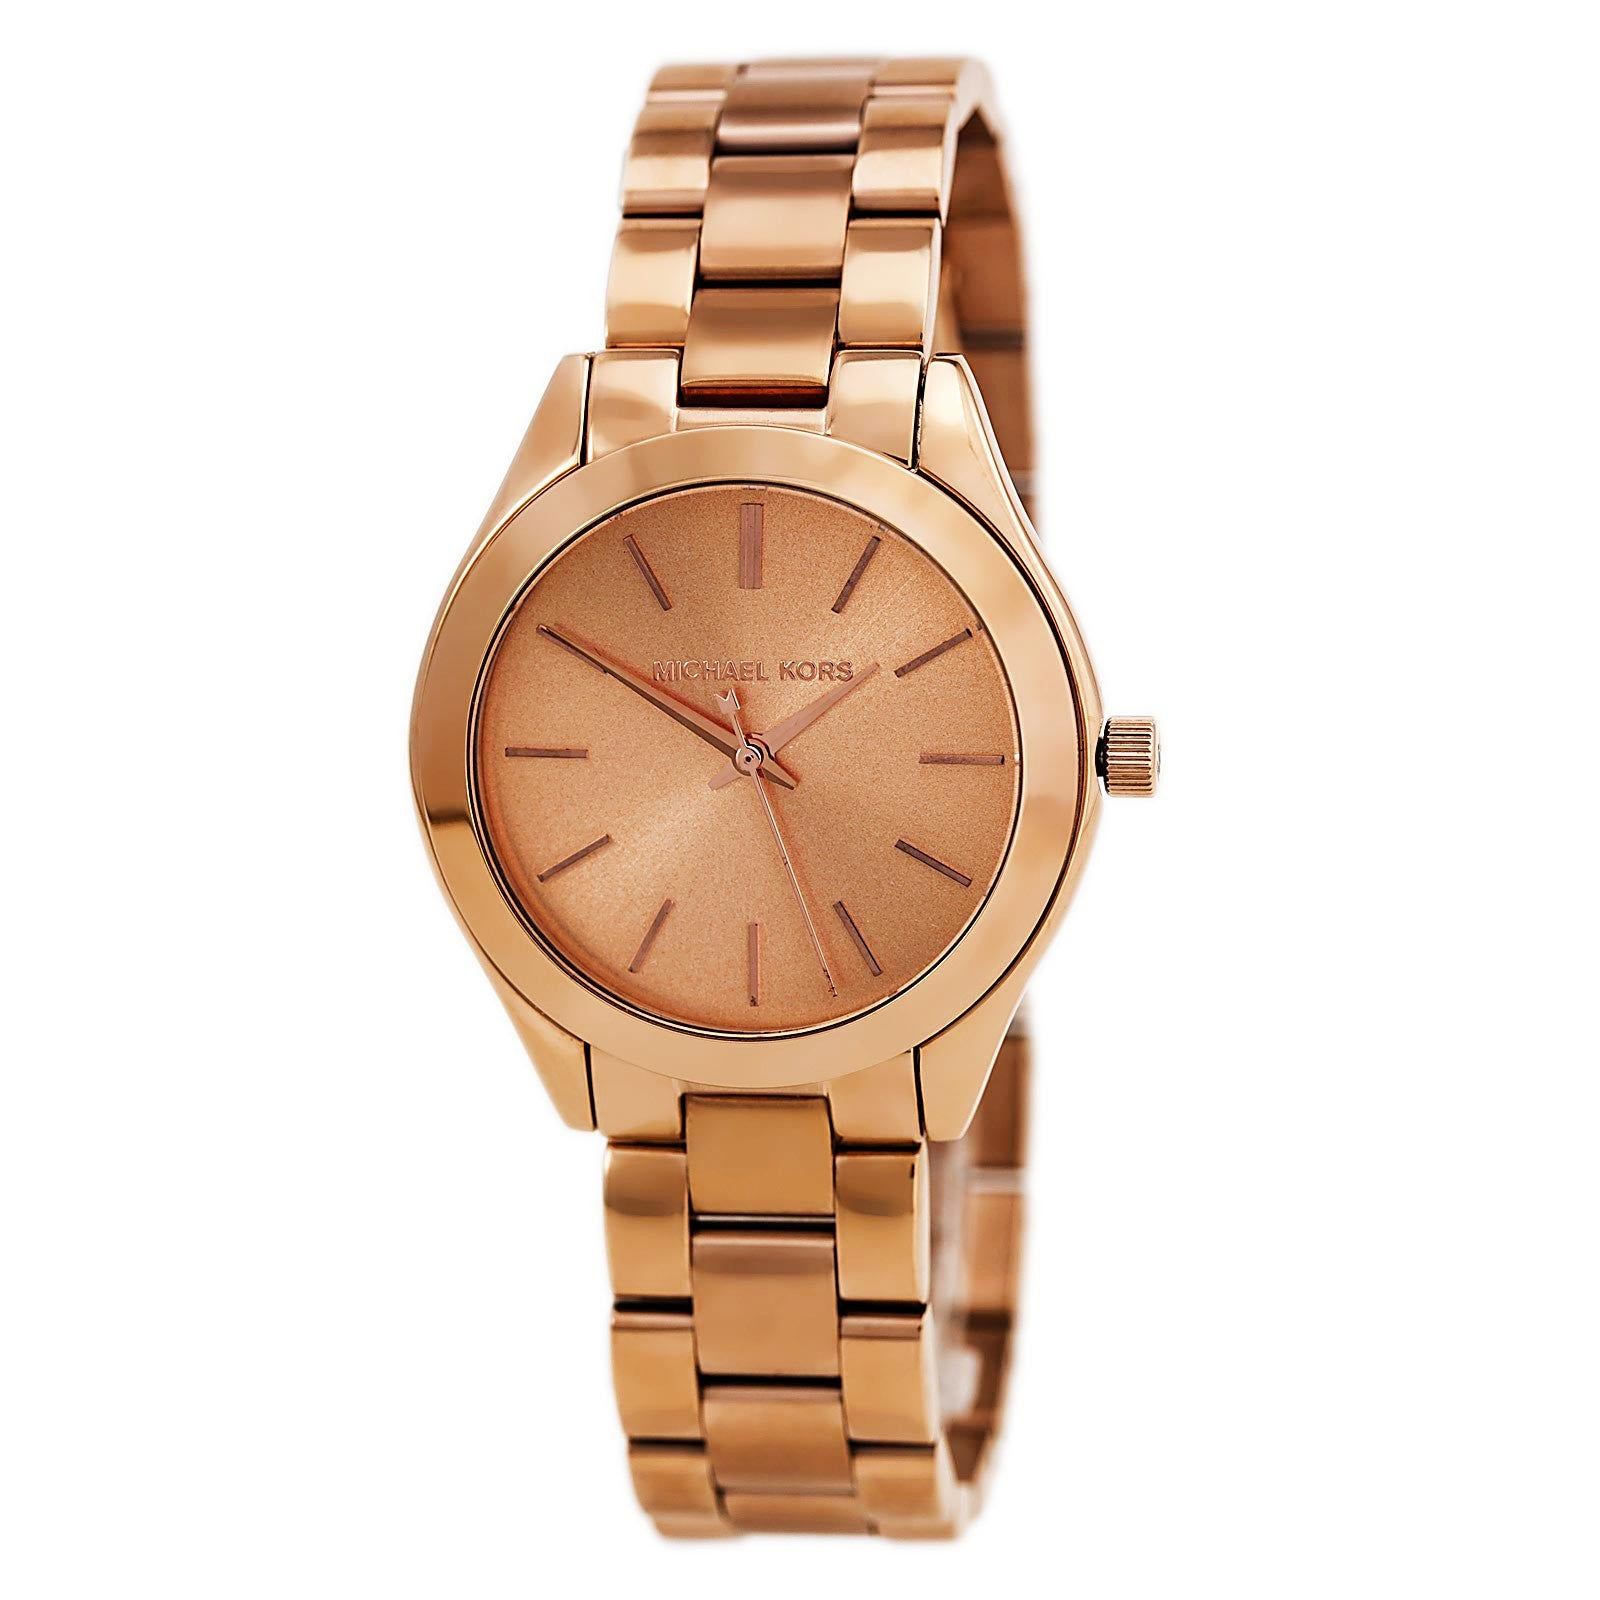 Michael Kors MK3205A Lady's Runway Rose Gold Stainless Steel Watch